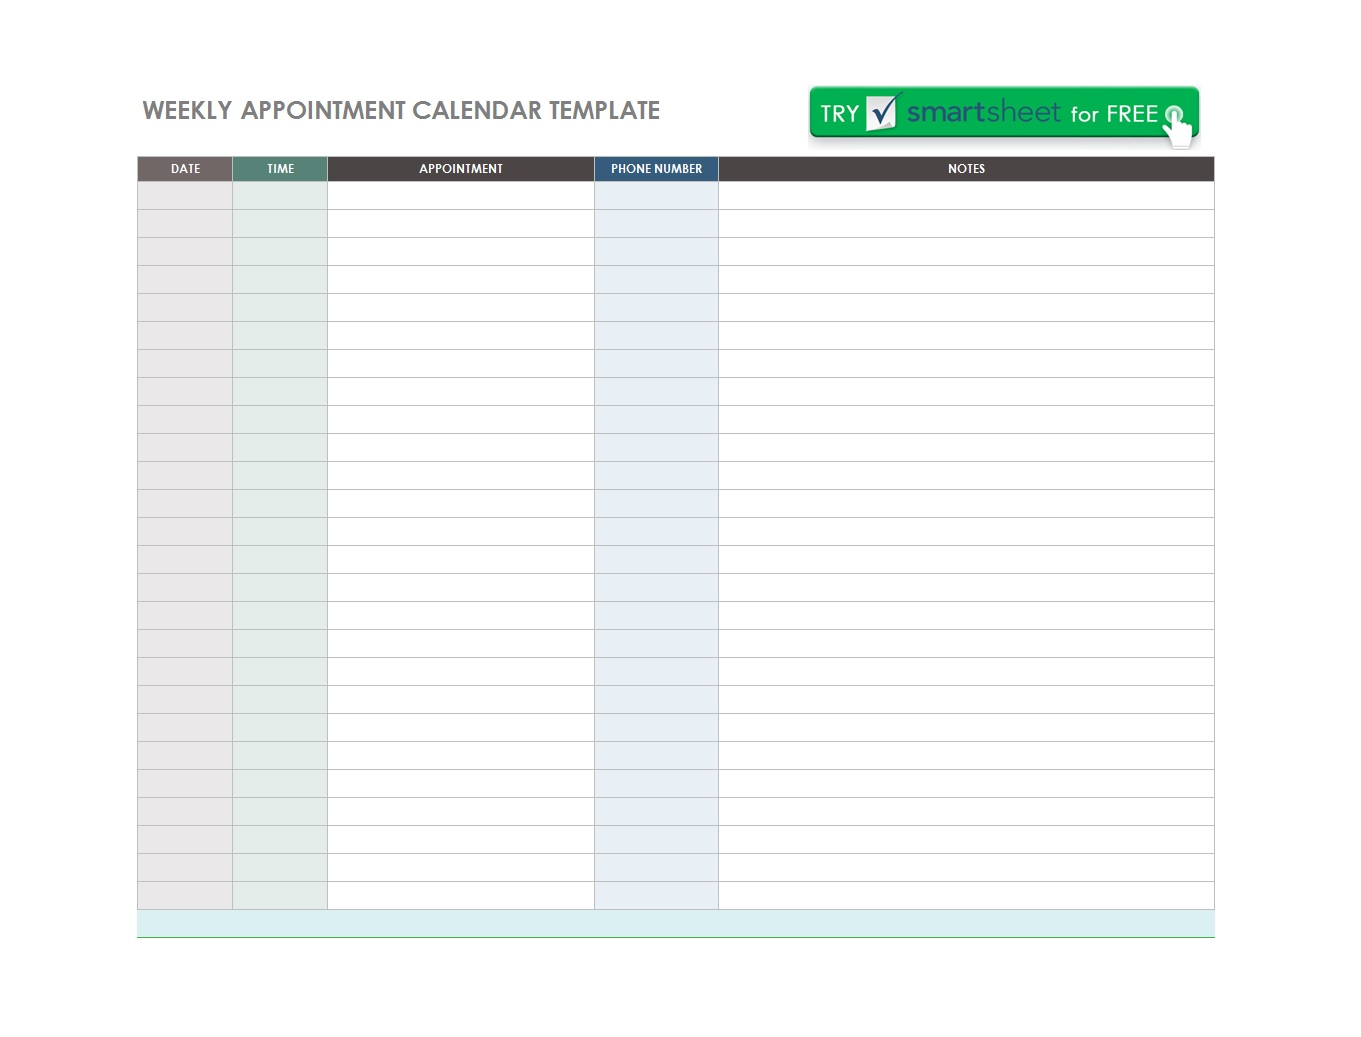 45 Printable Appointment Schedule Templates [& Appointment Calendars] in Free Appointment Calendar Template